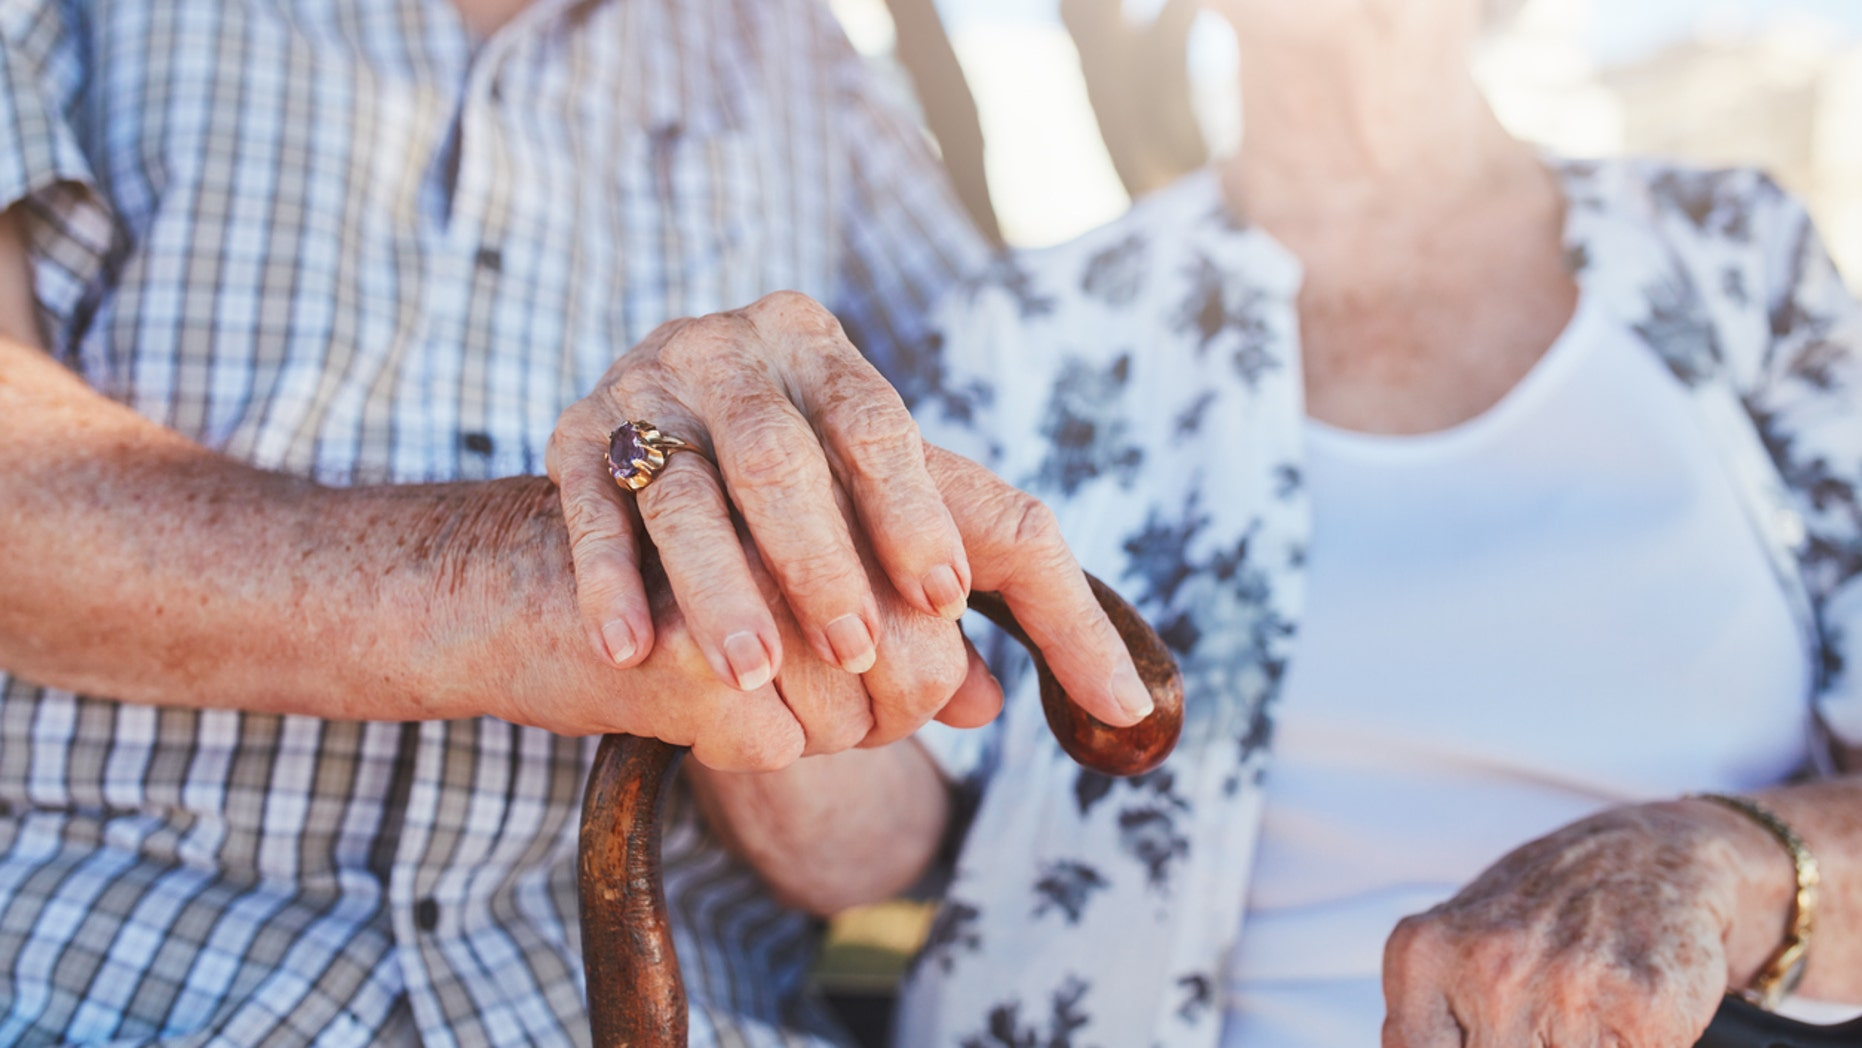 Cropped shot of senior couple holding hands while sitting together. Focus on hands on walking stick.